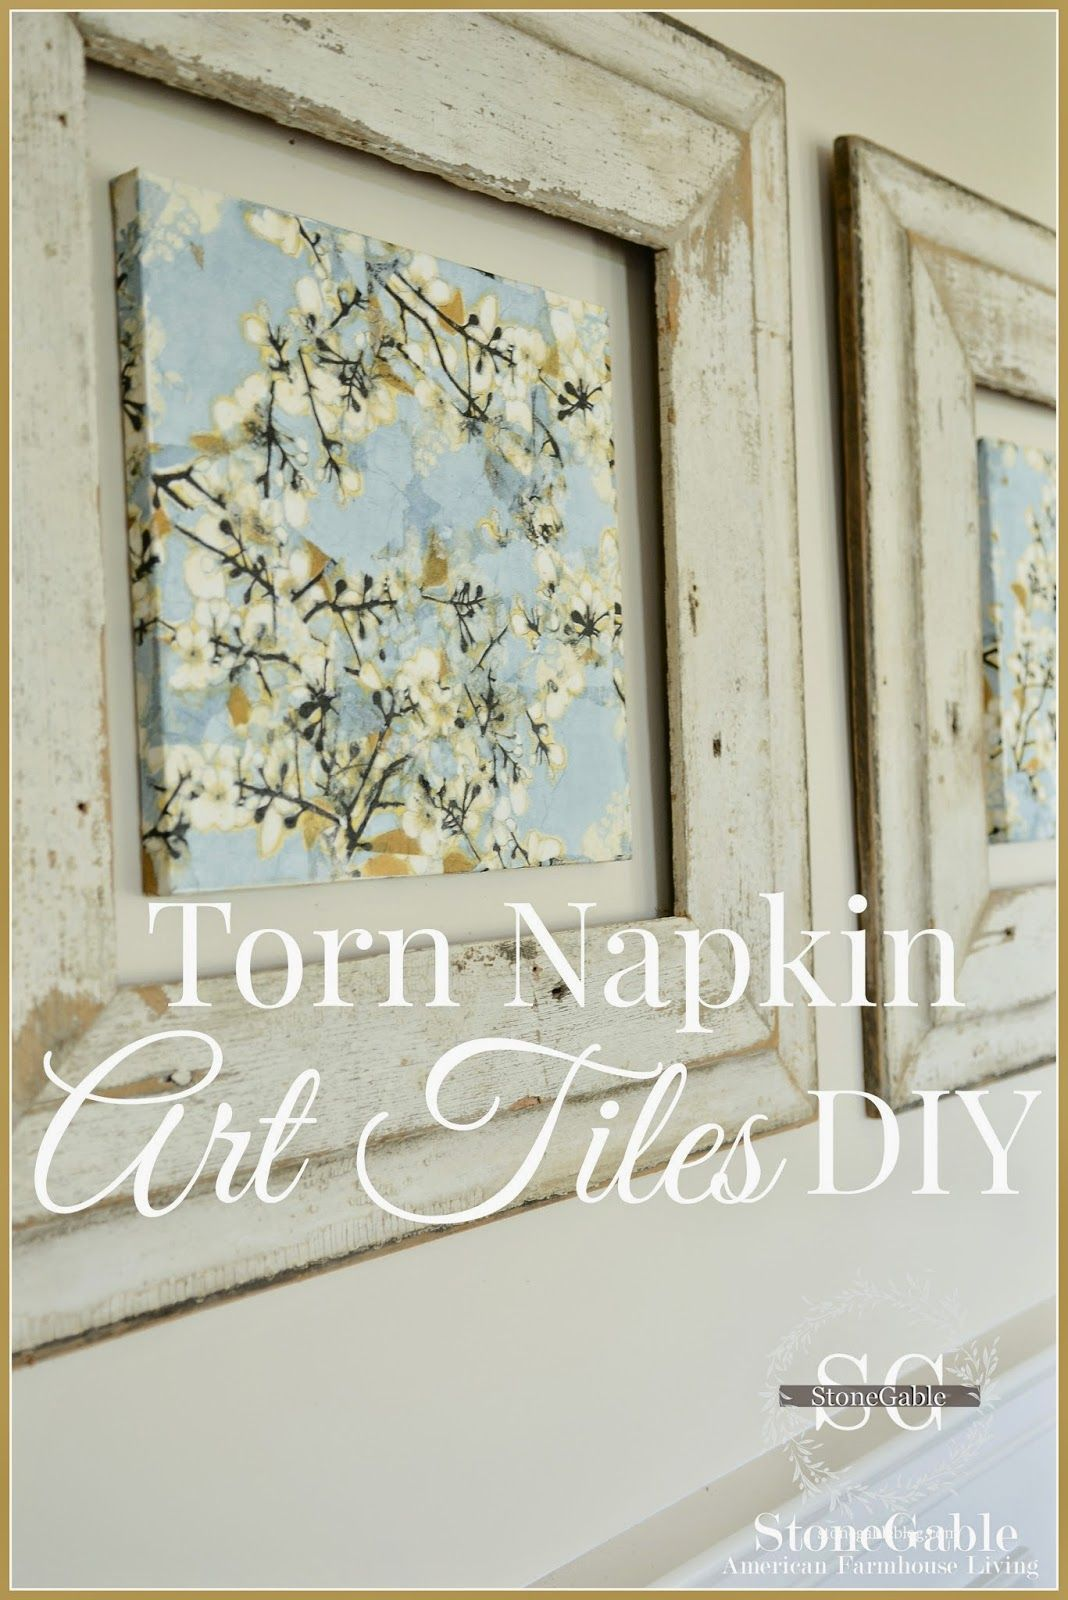 Torn Napkin Art Tiles Diy Share Your Craft Diy Canvas